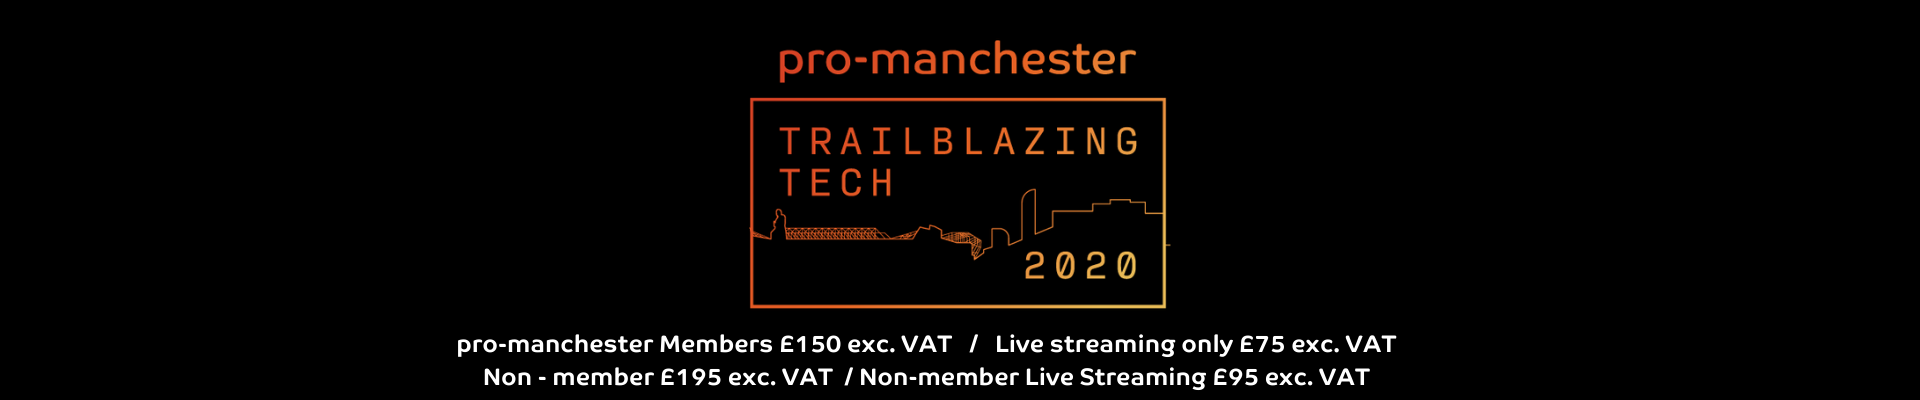 Trailblazing Technology Conference 2020